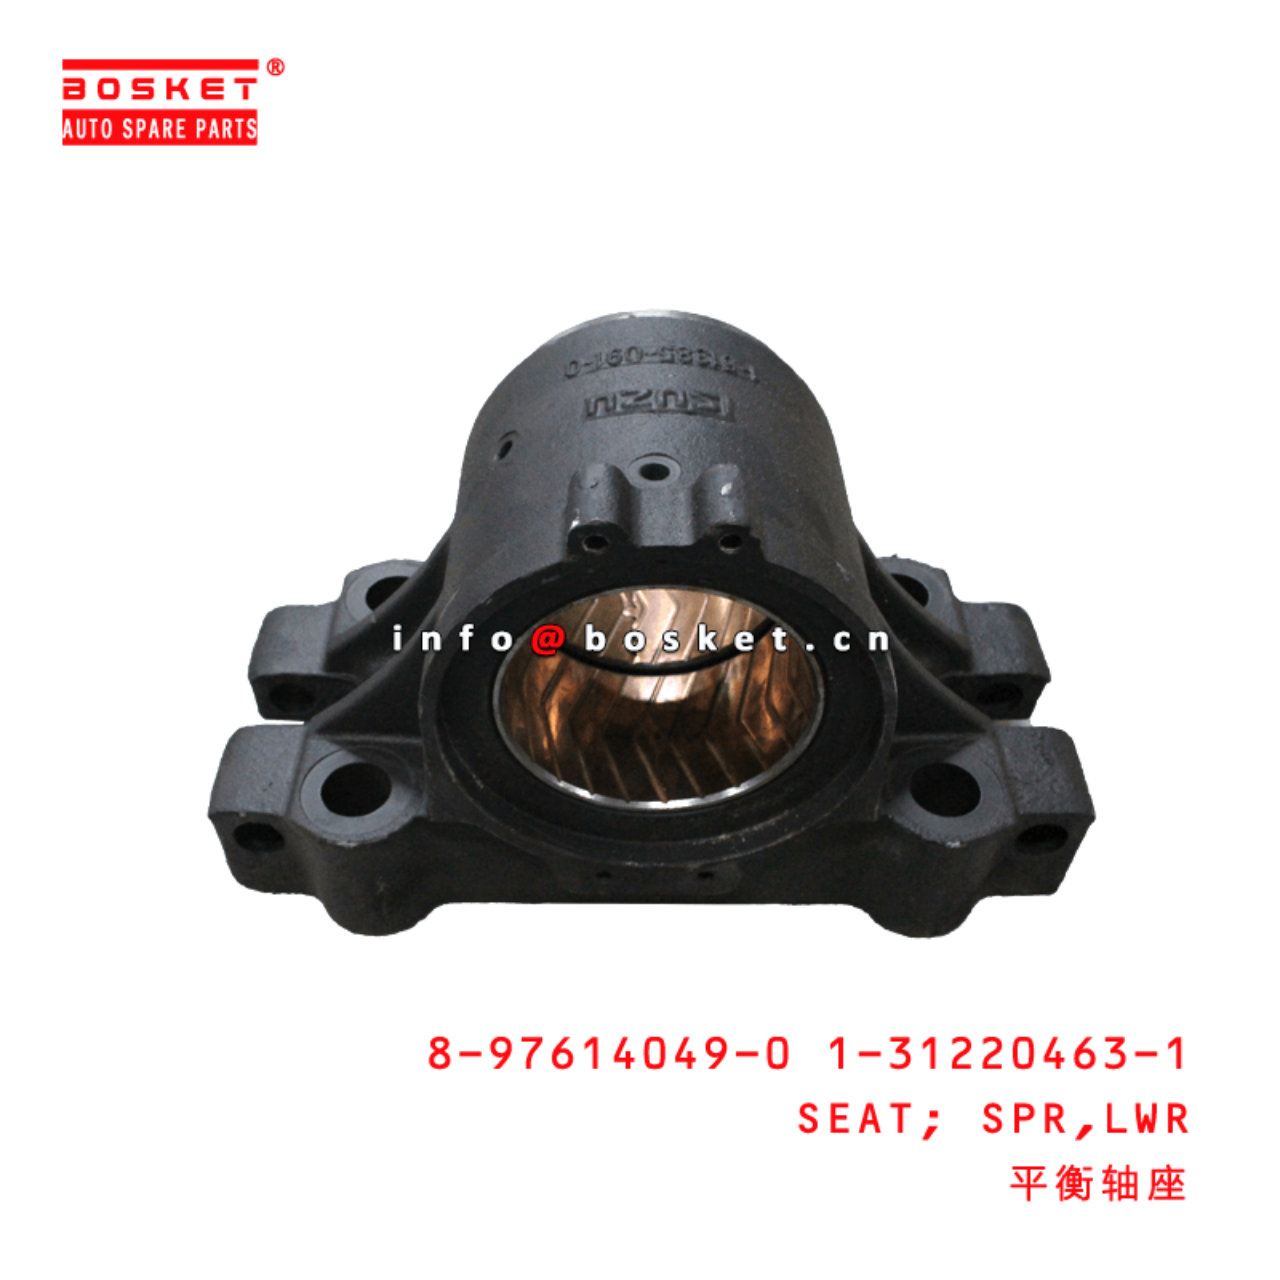 8-97614049-0 1-31220463-1 Lower Spring Seat 8976140490 1312204631 Suitable for ISUZU VC46 6WF1